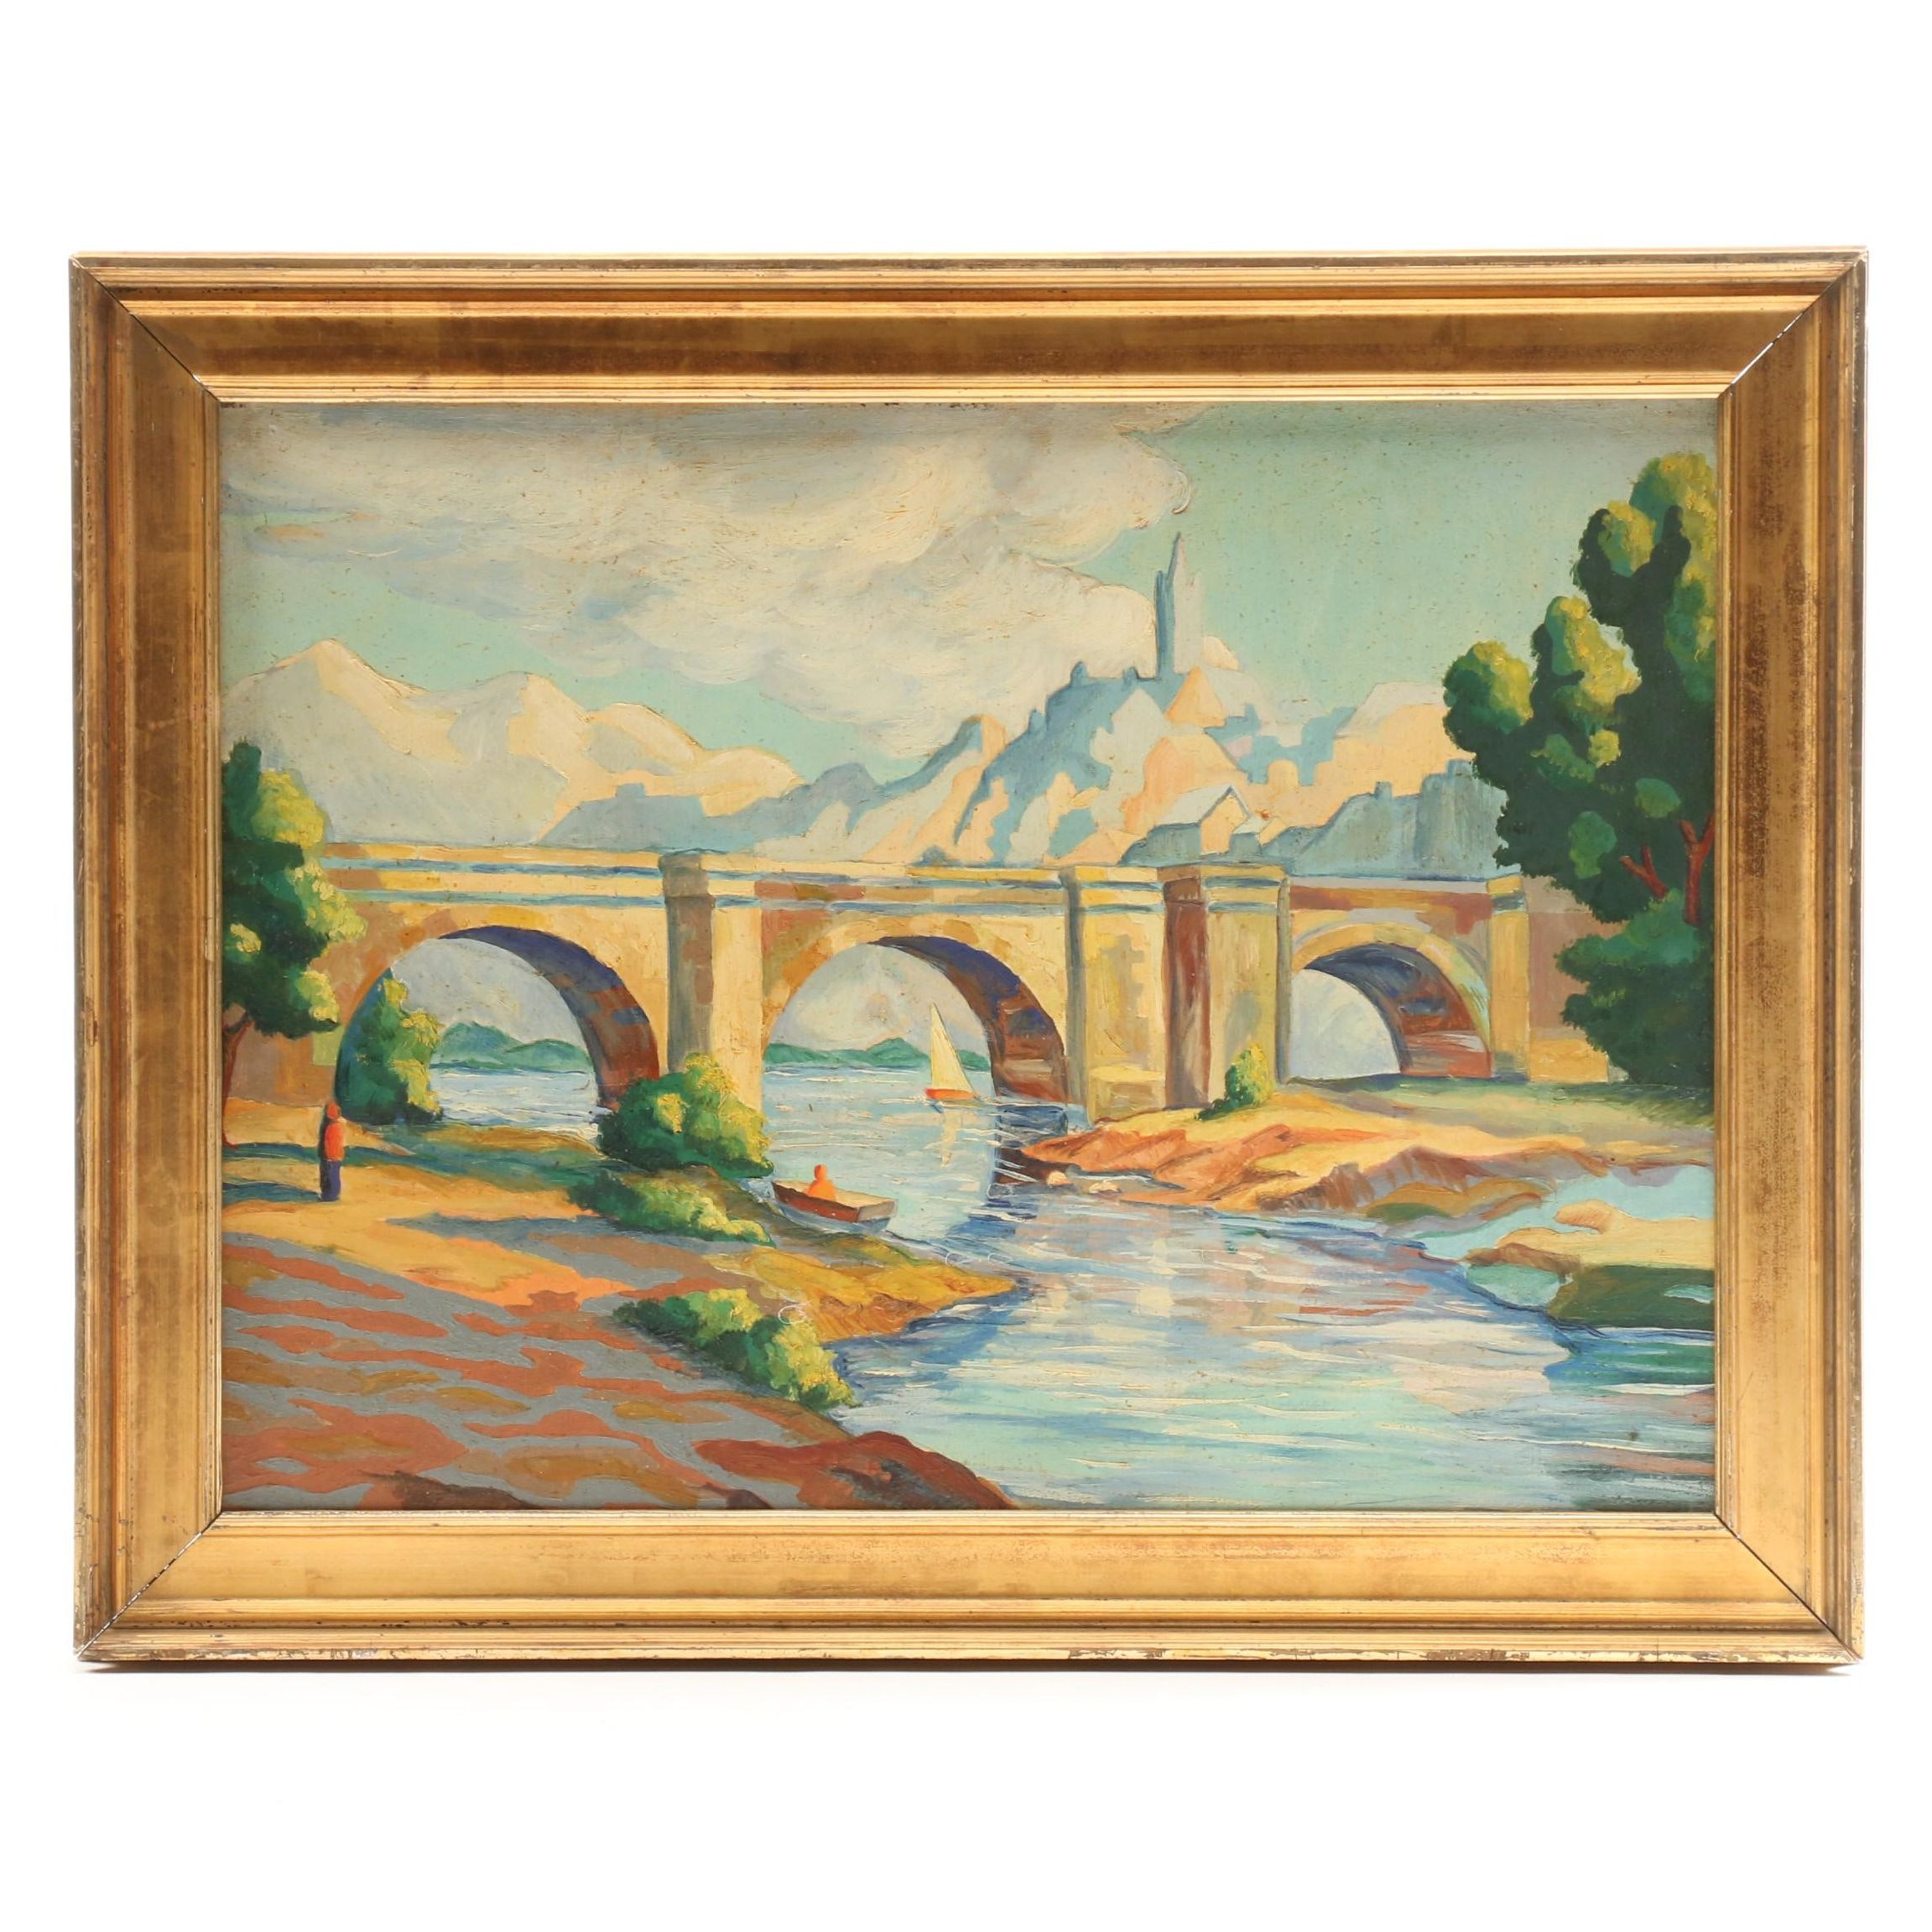 Oil Painting of River Scene with Bridge